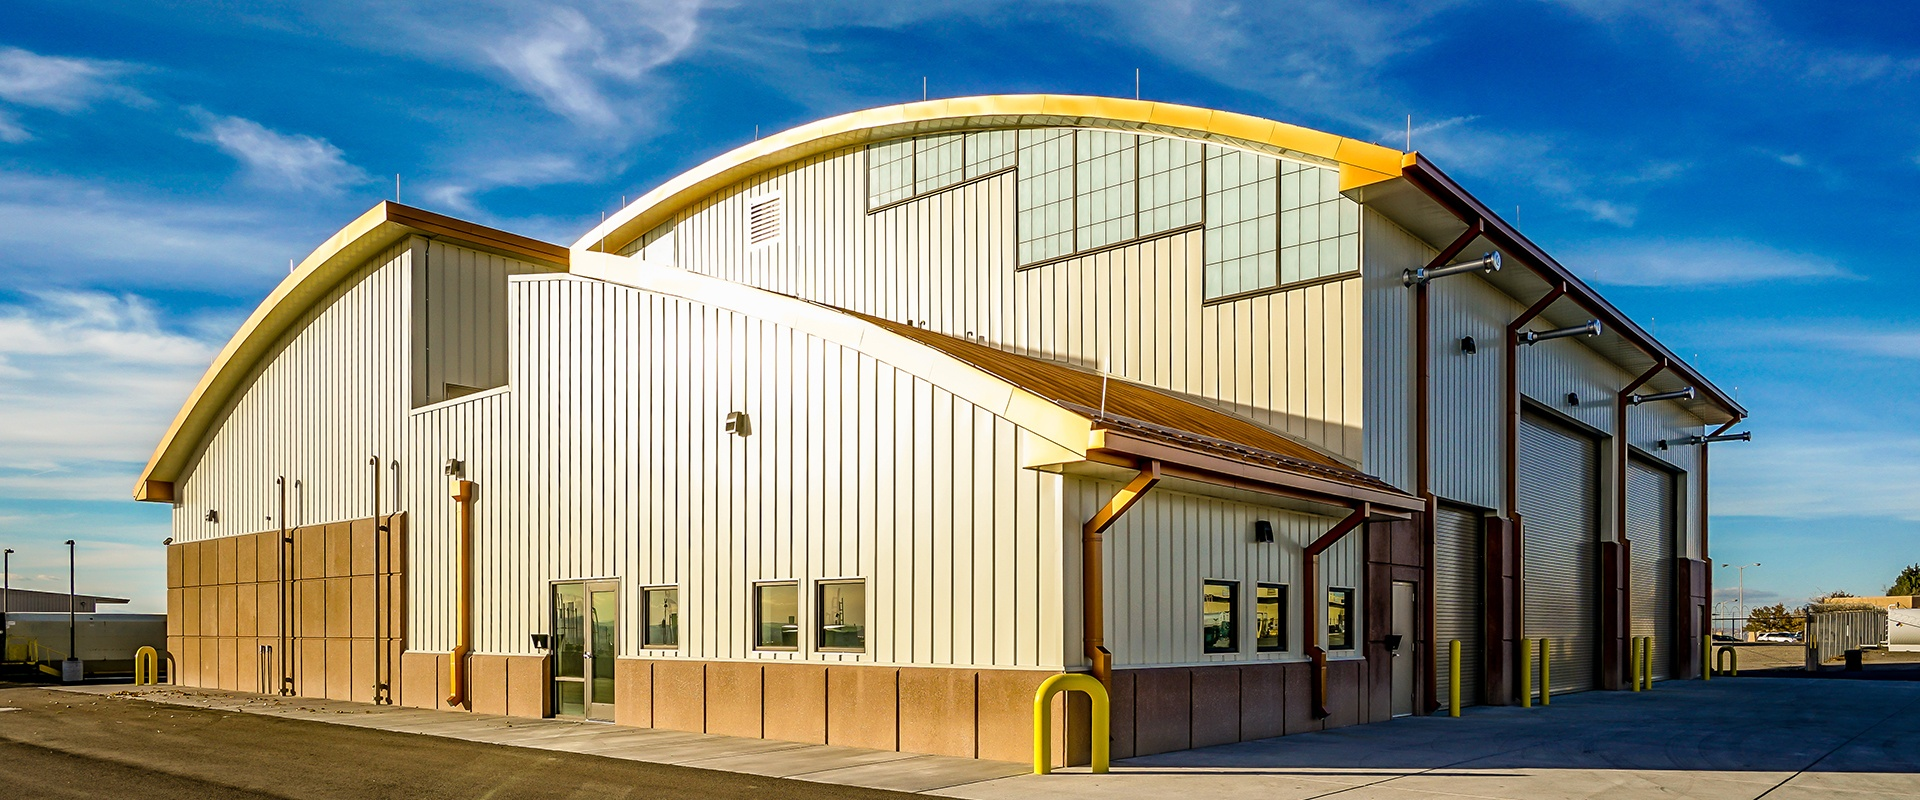 Albuquerque International Sunport Snow Barn | Richardson & Richardson Construction